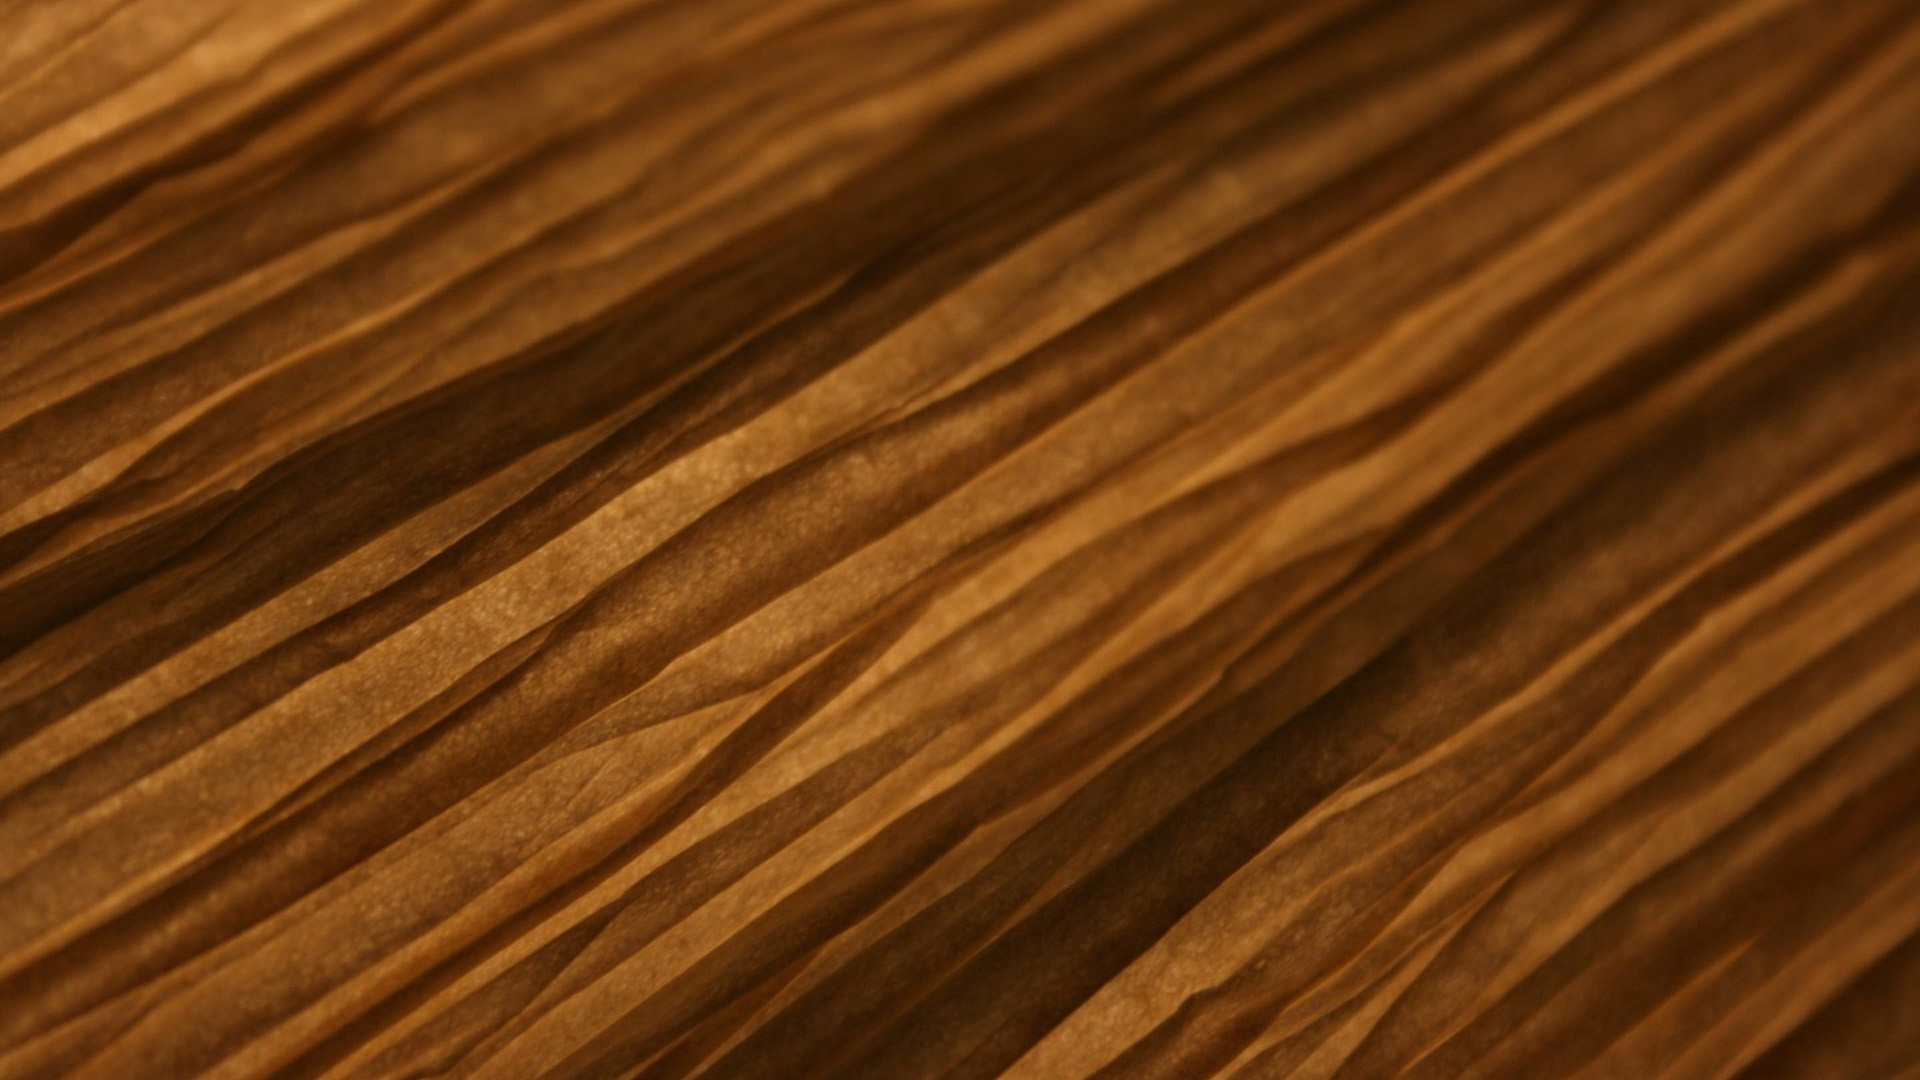 Wood Grain computer wallpaper